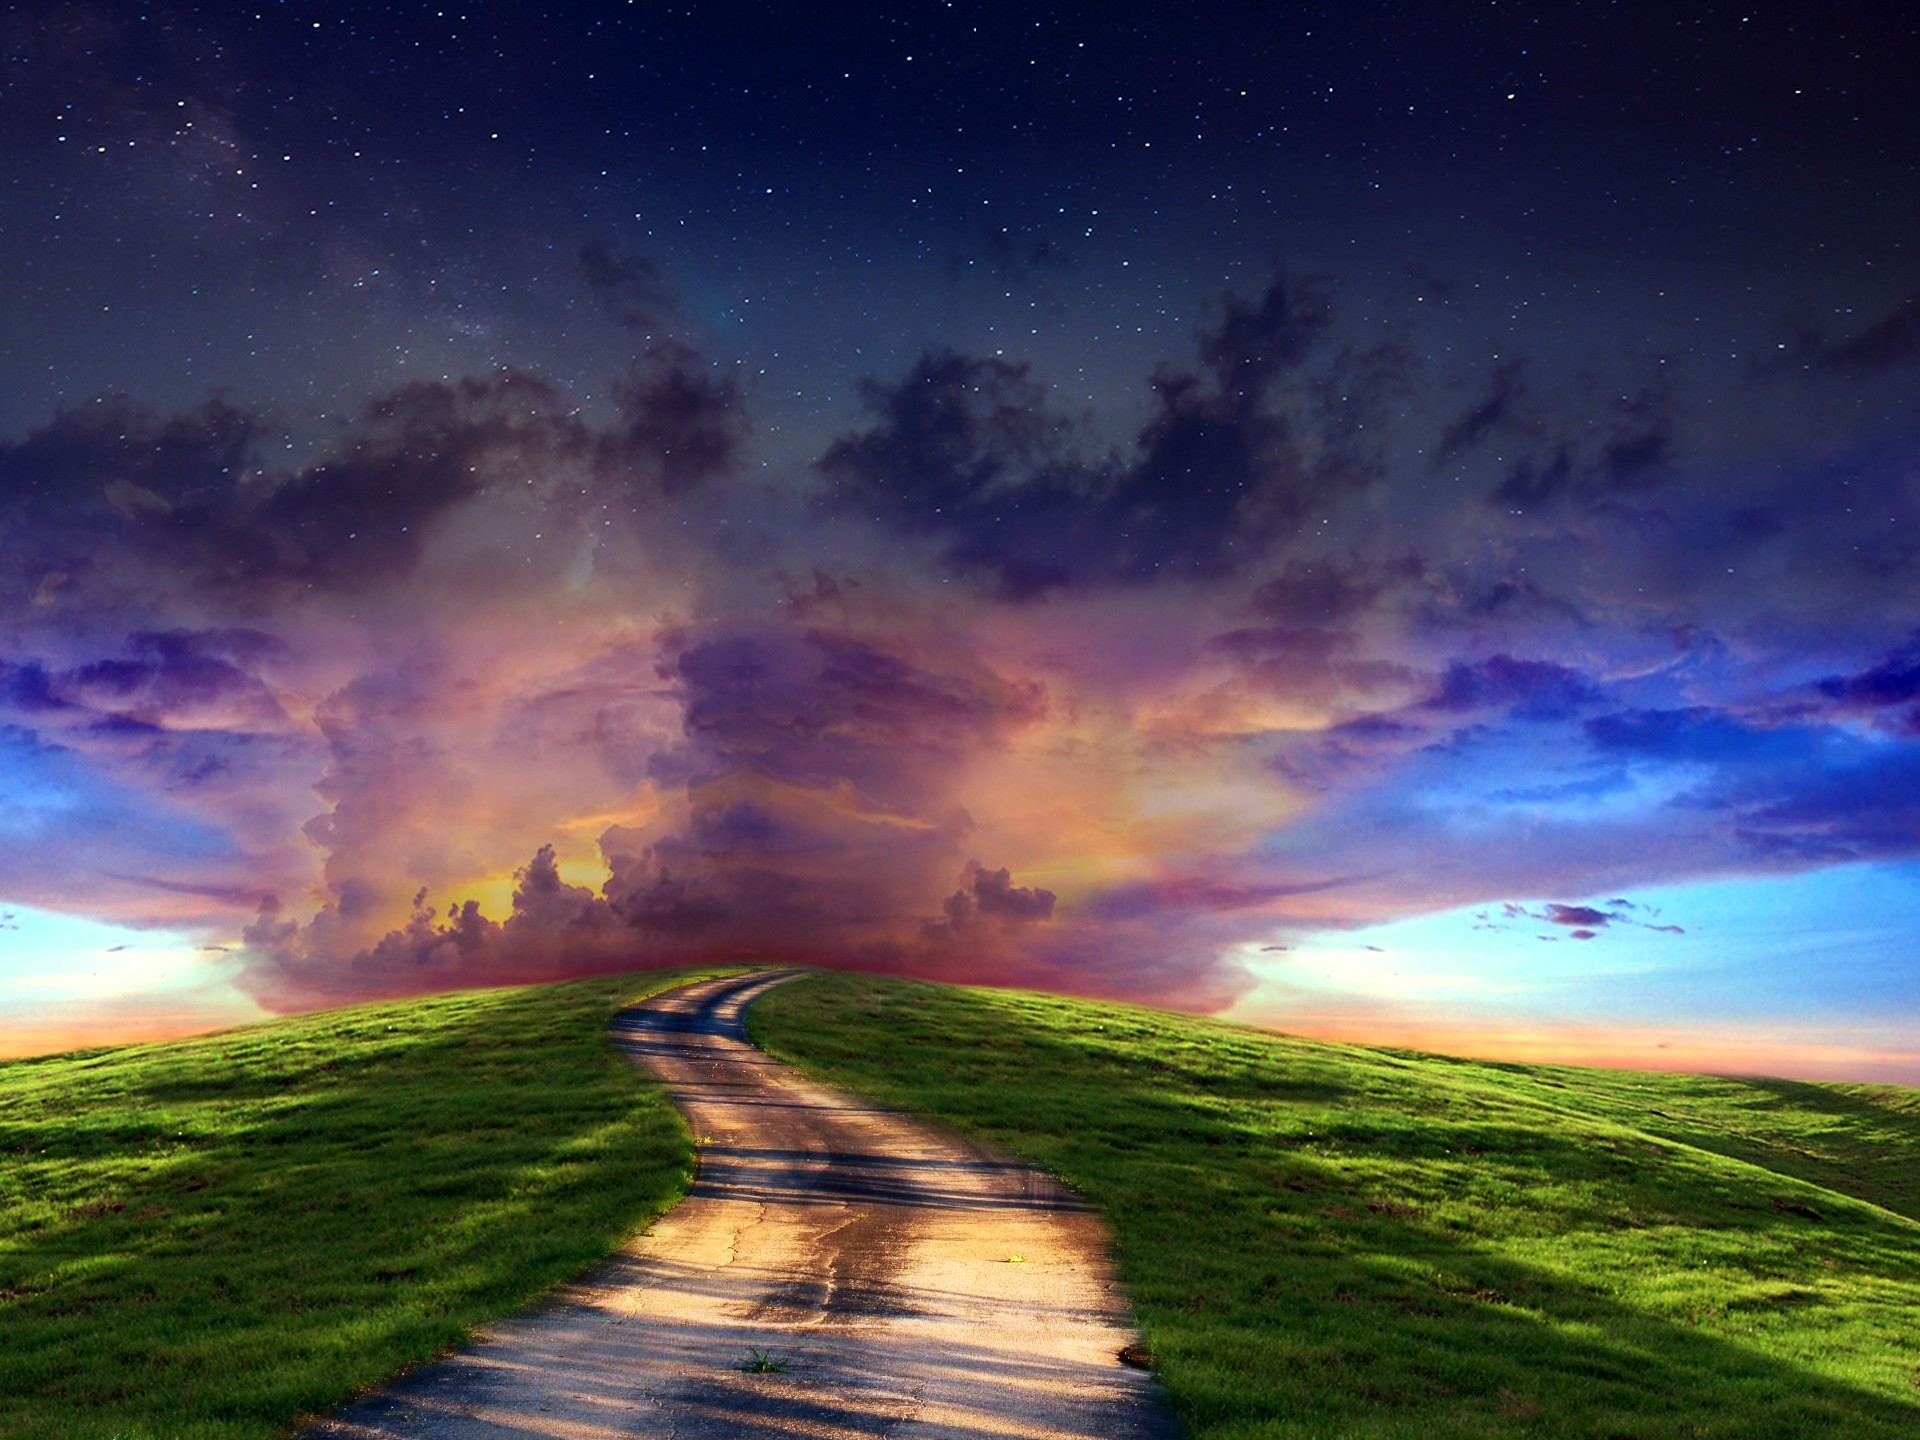 Magical Wallpapers for Desktop (58+ images)